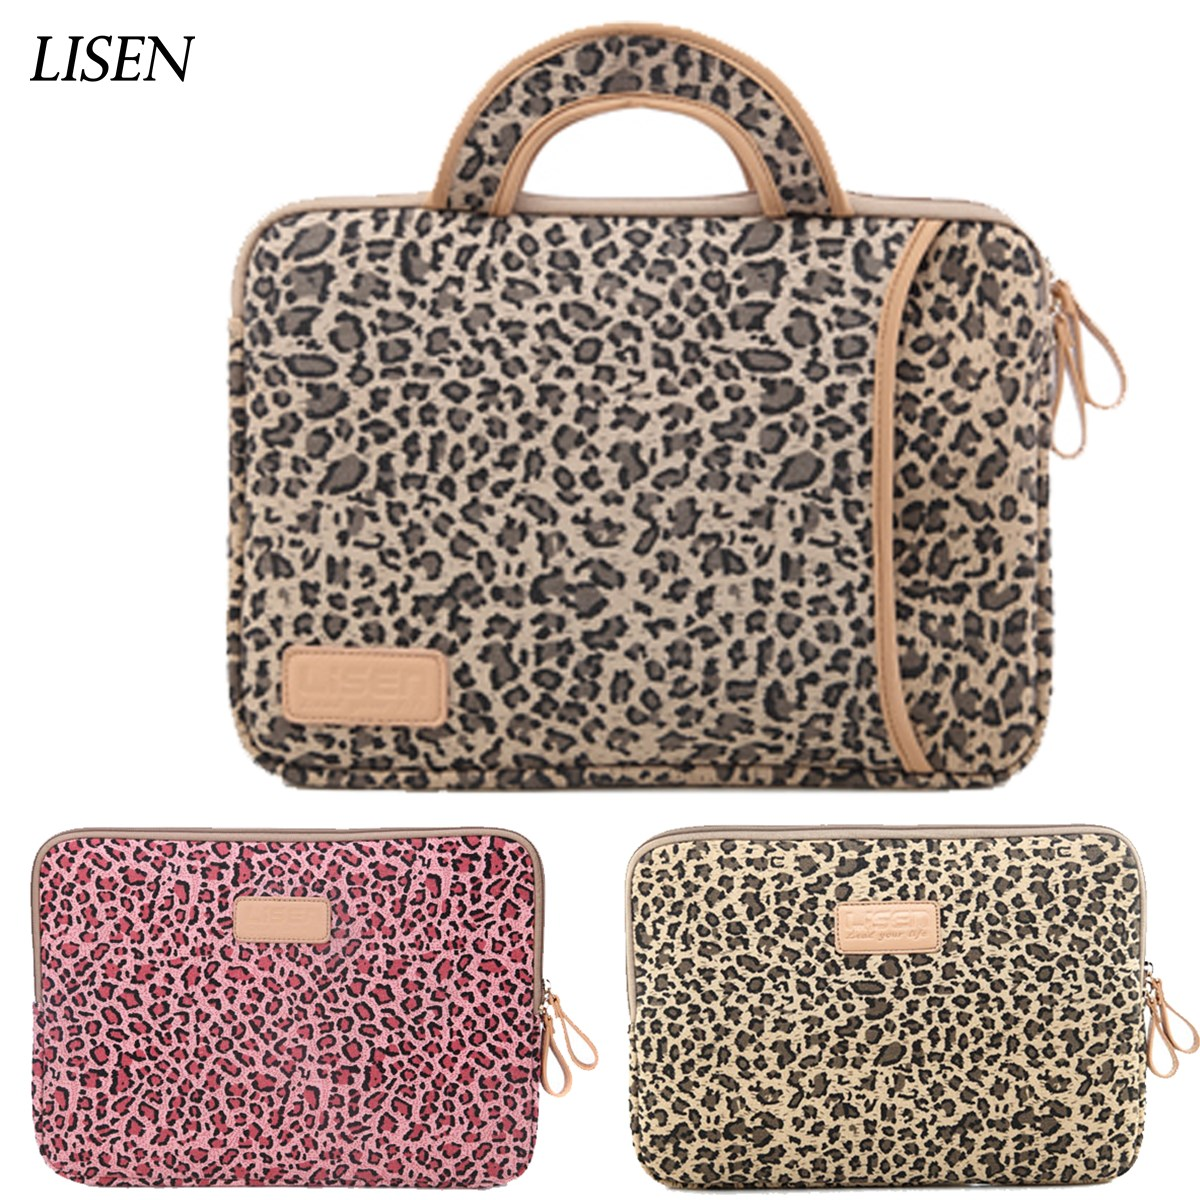 Shockproof Leopard Pouch Handbag Liner Sleeve Case For Macbook Air 13 14 15 15.4 Cover For Retina Pro 13.3